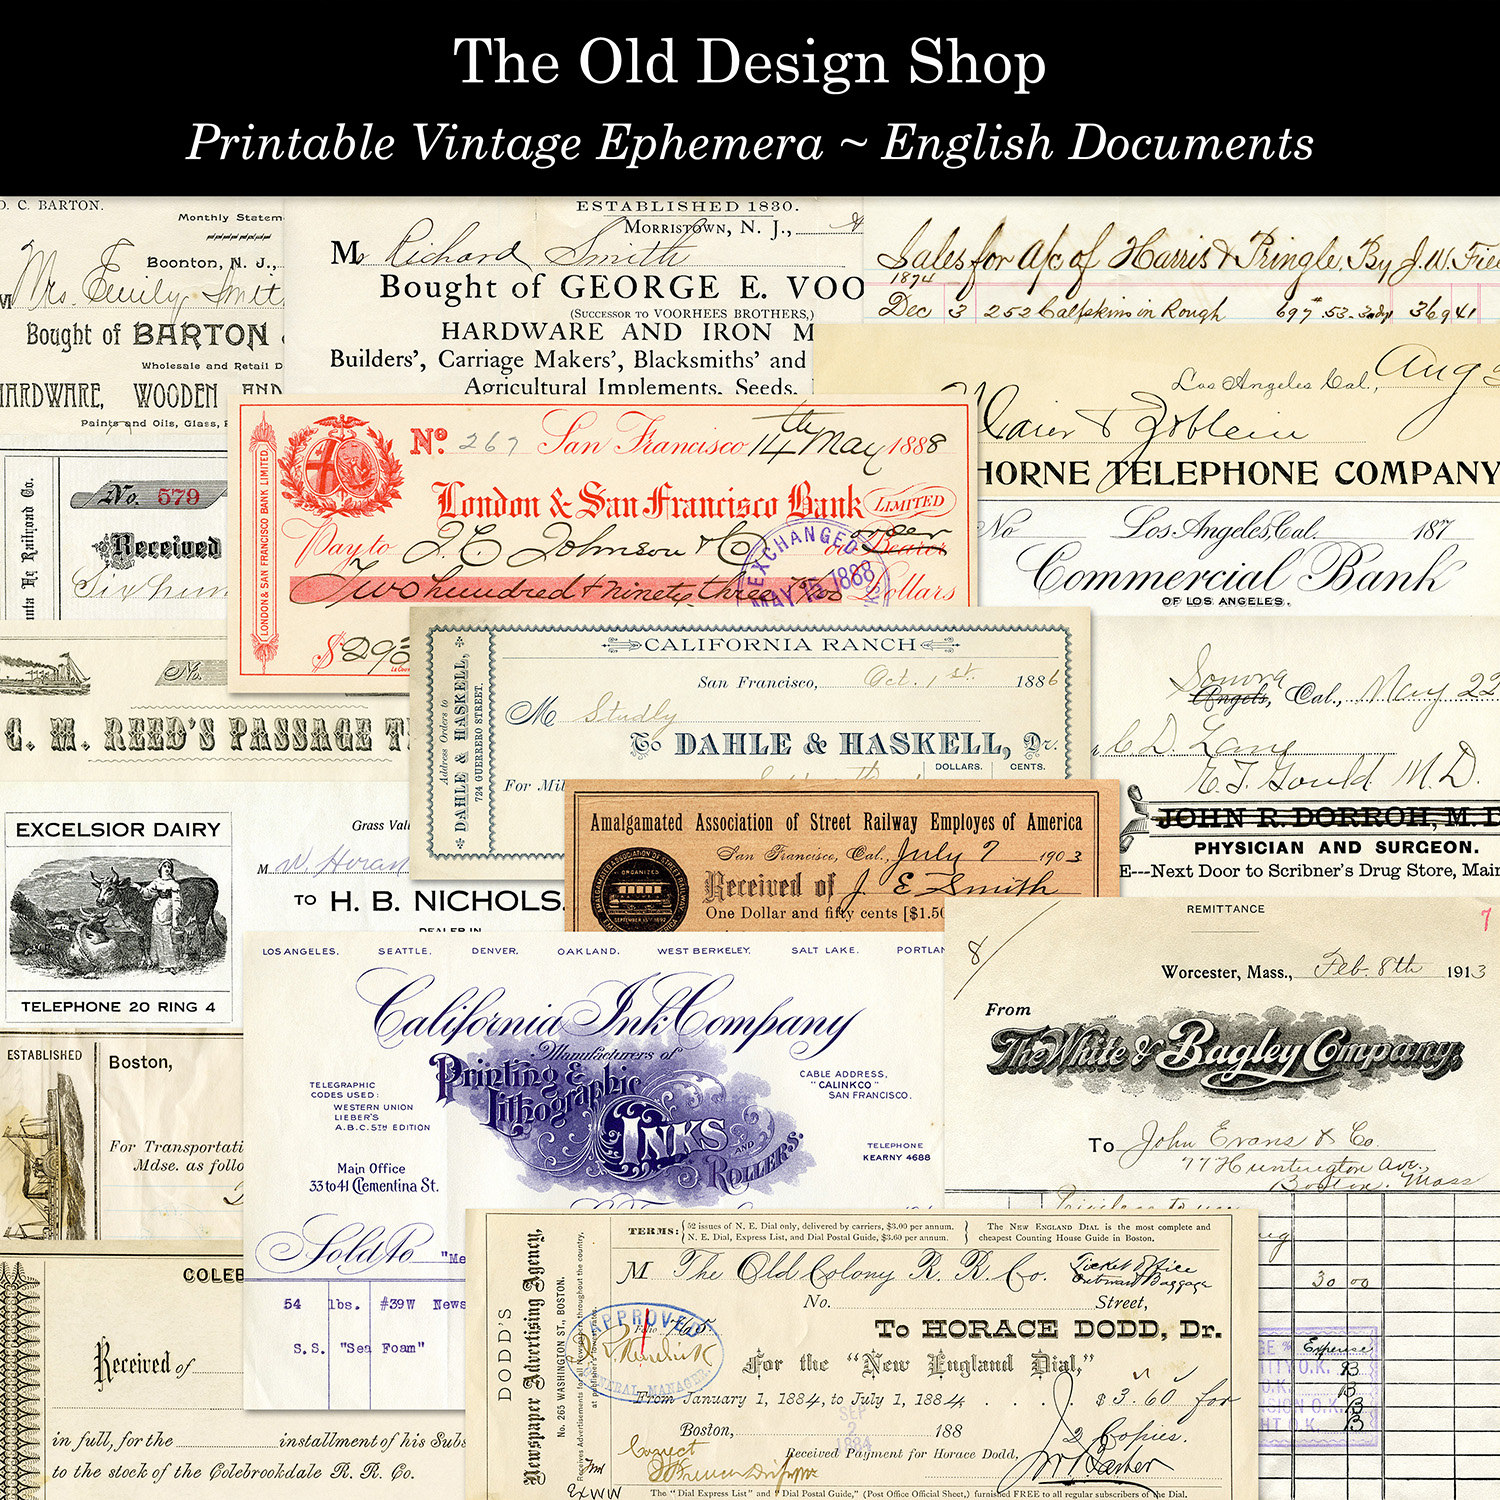 printable vintage ephemera English documents